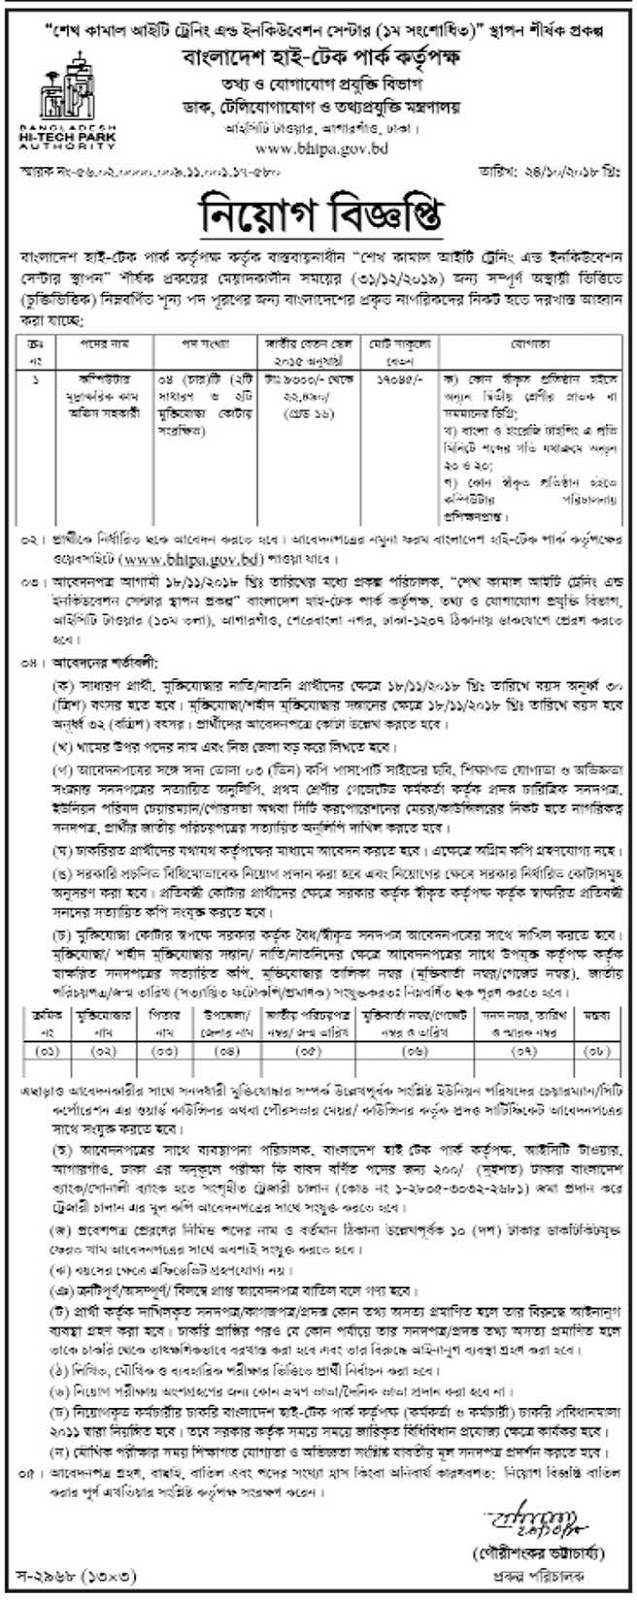 Bangladesh Hi-Tech Park Authority (BHTPA) Job Circular 2018